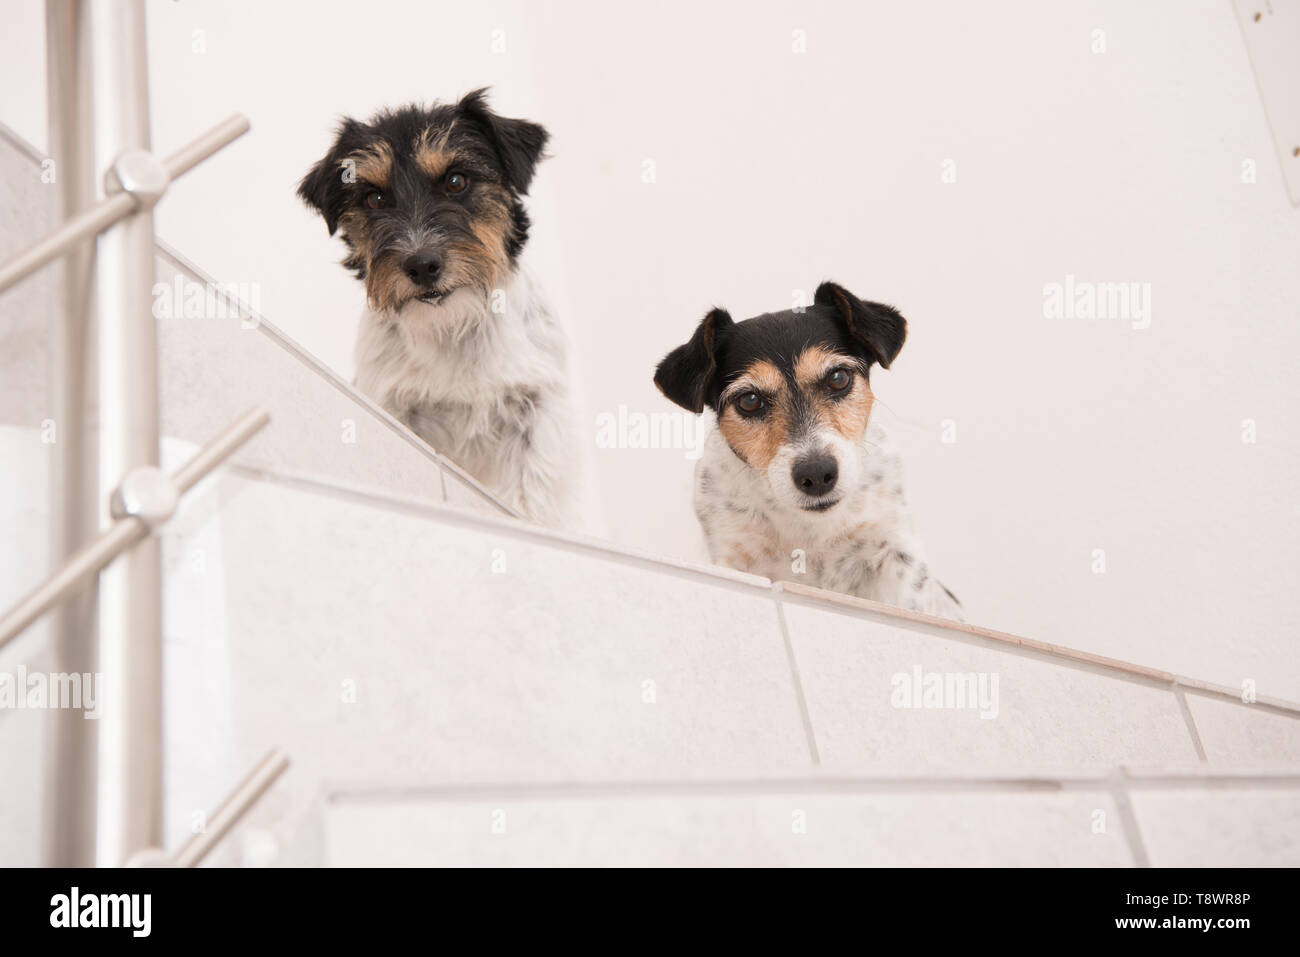 Cute Jack Russell Terrier dog sits on a stairs and looks forwards - Stock Image